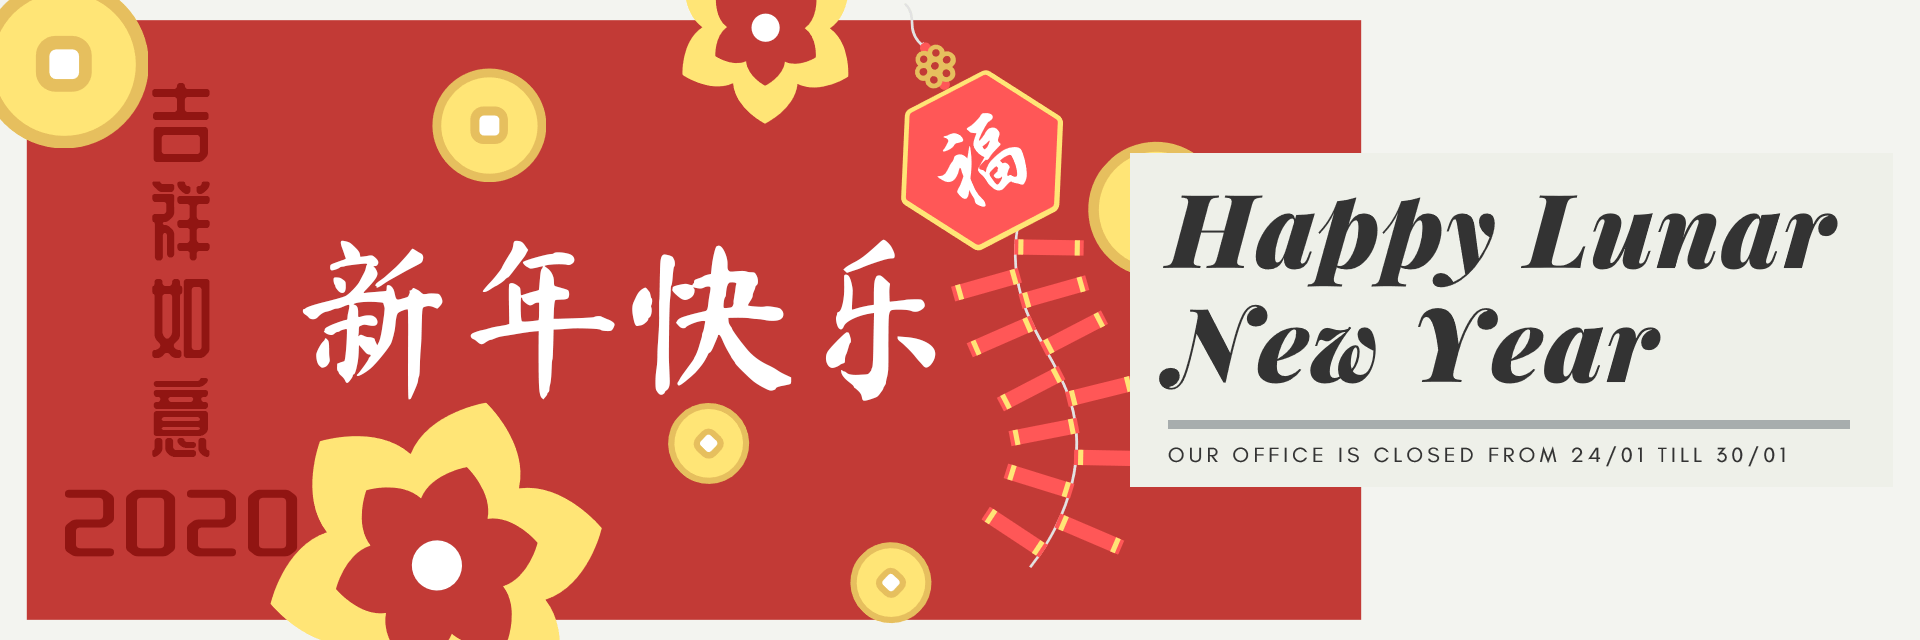 Chinese New Year 2020 Lunar wish